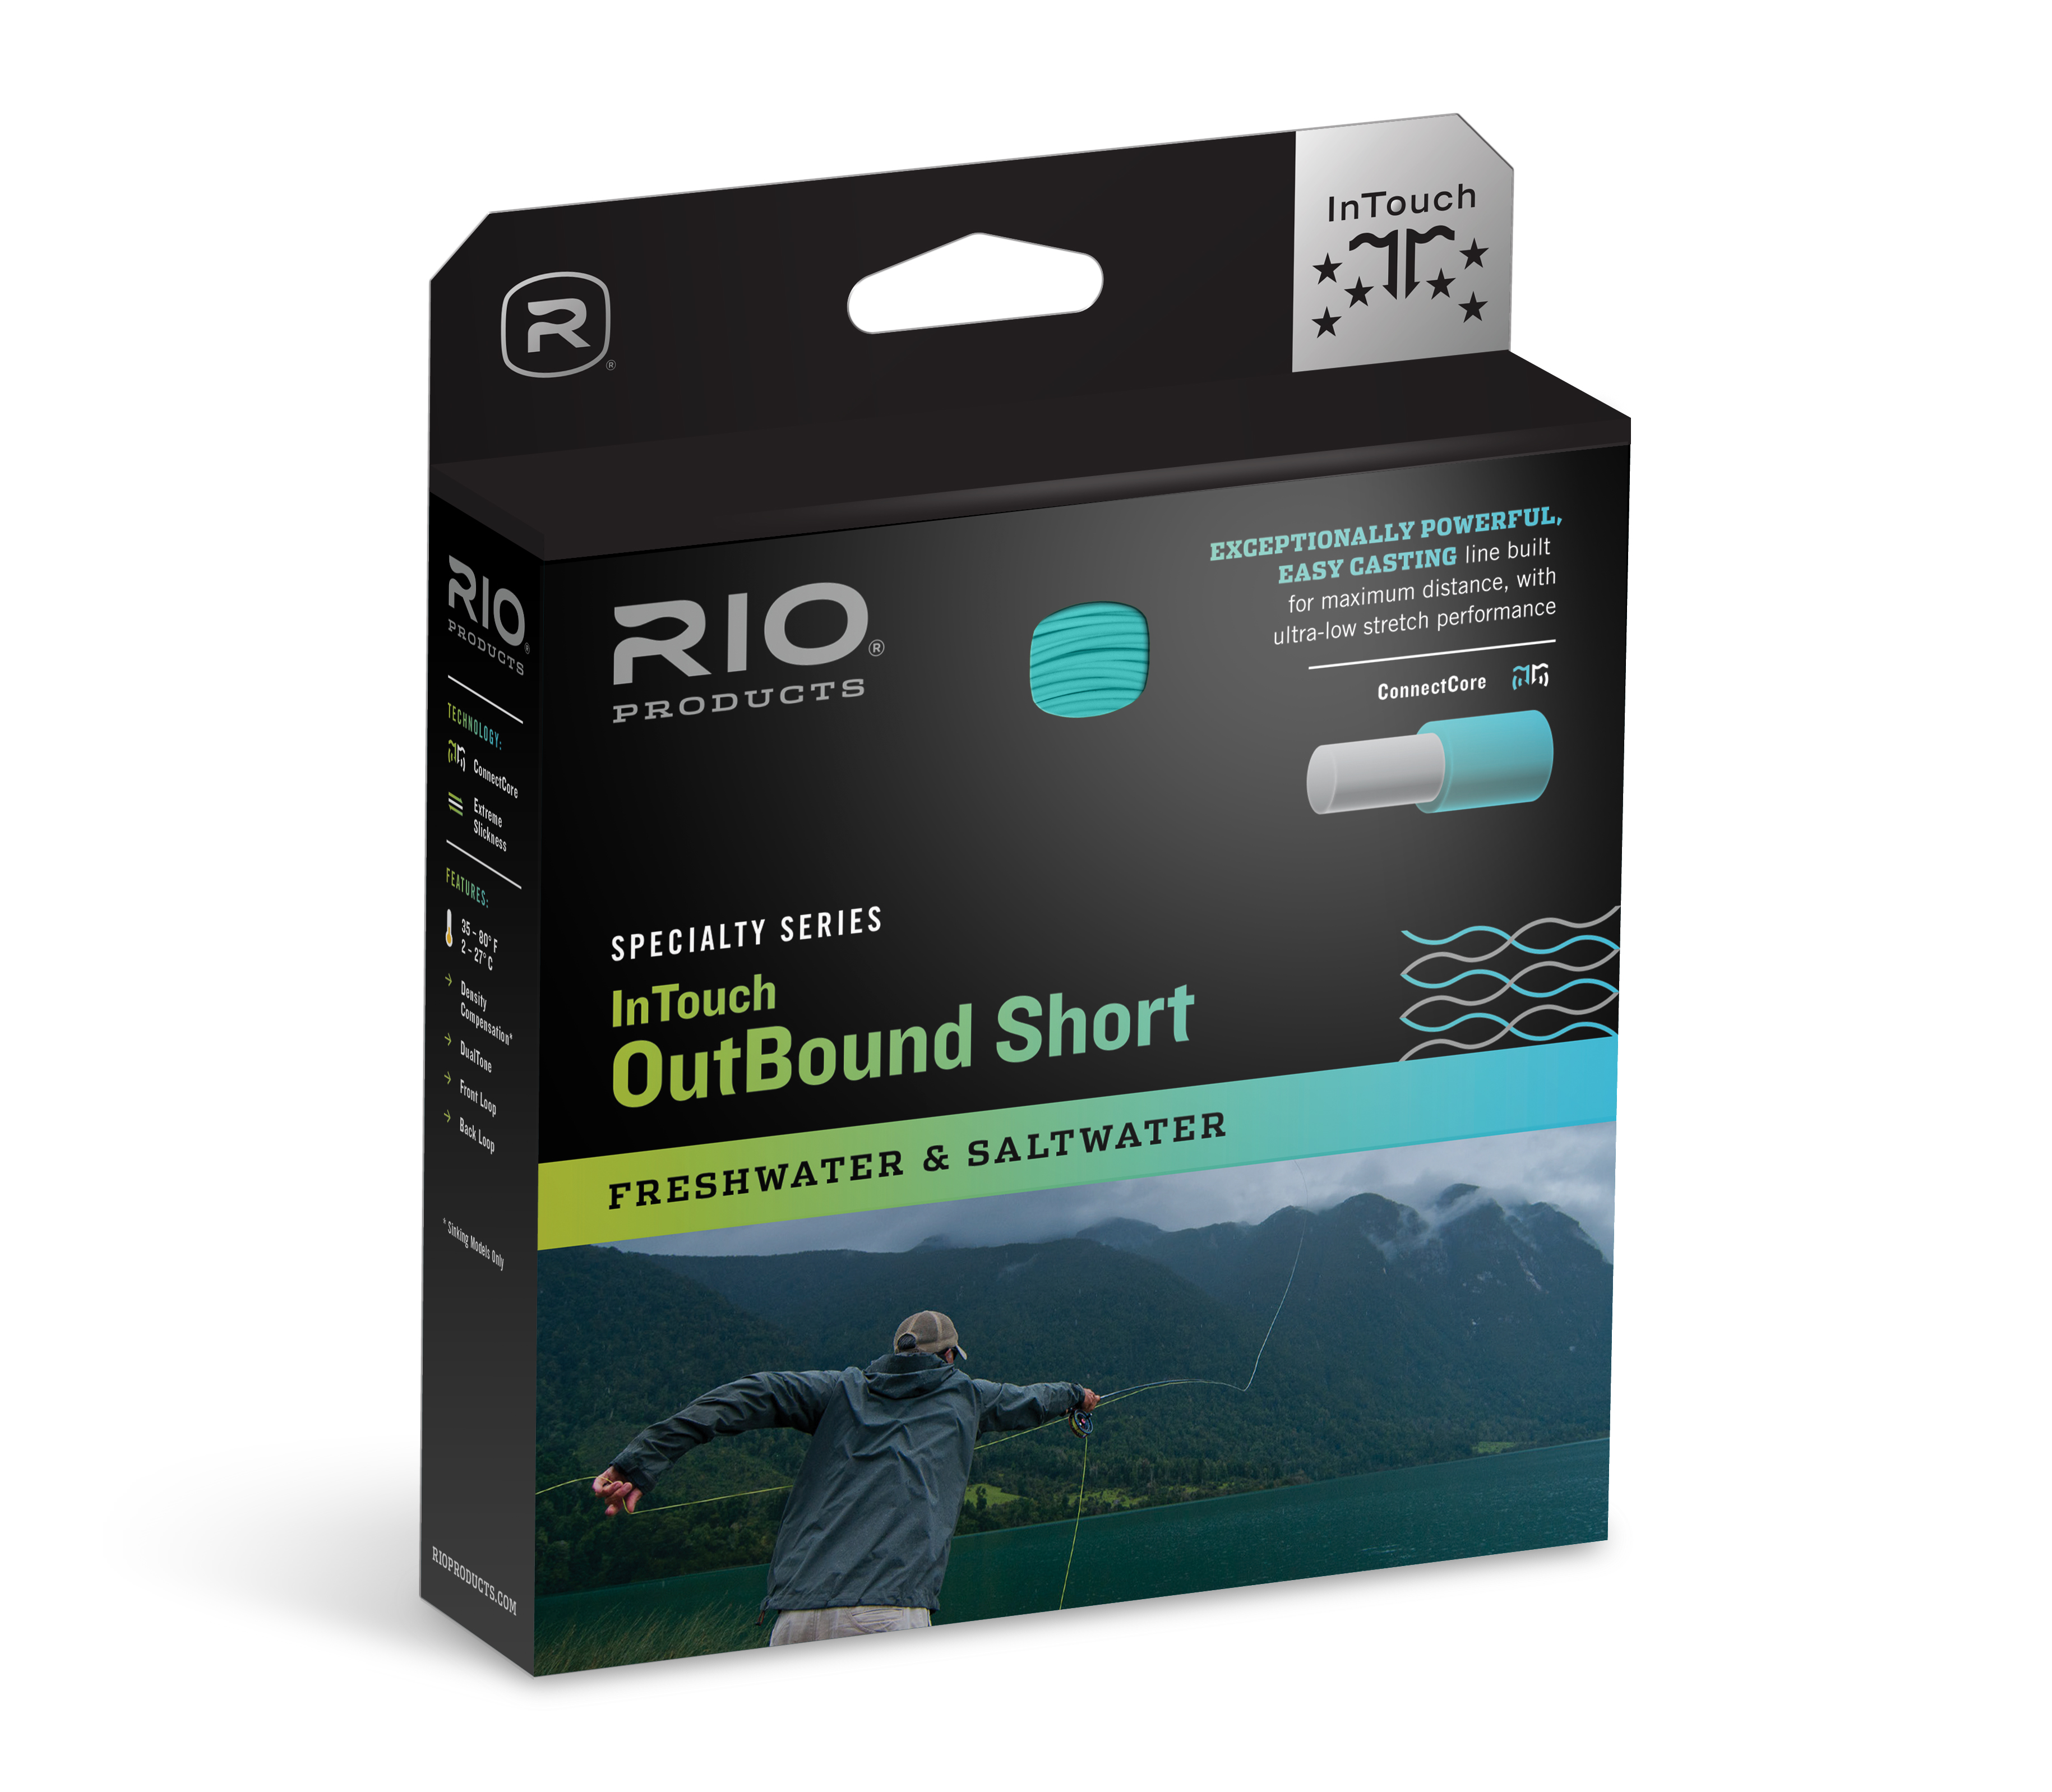 Rio Outbound Short InTouch Float/Int